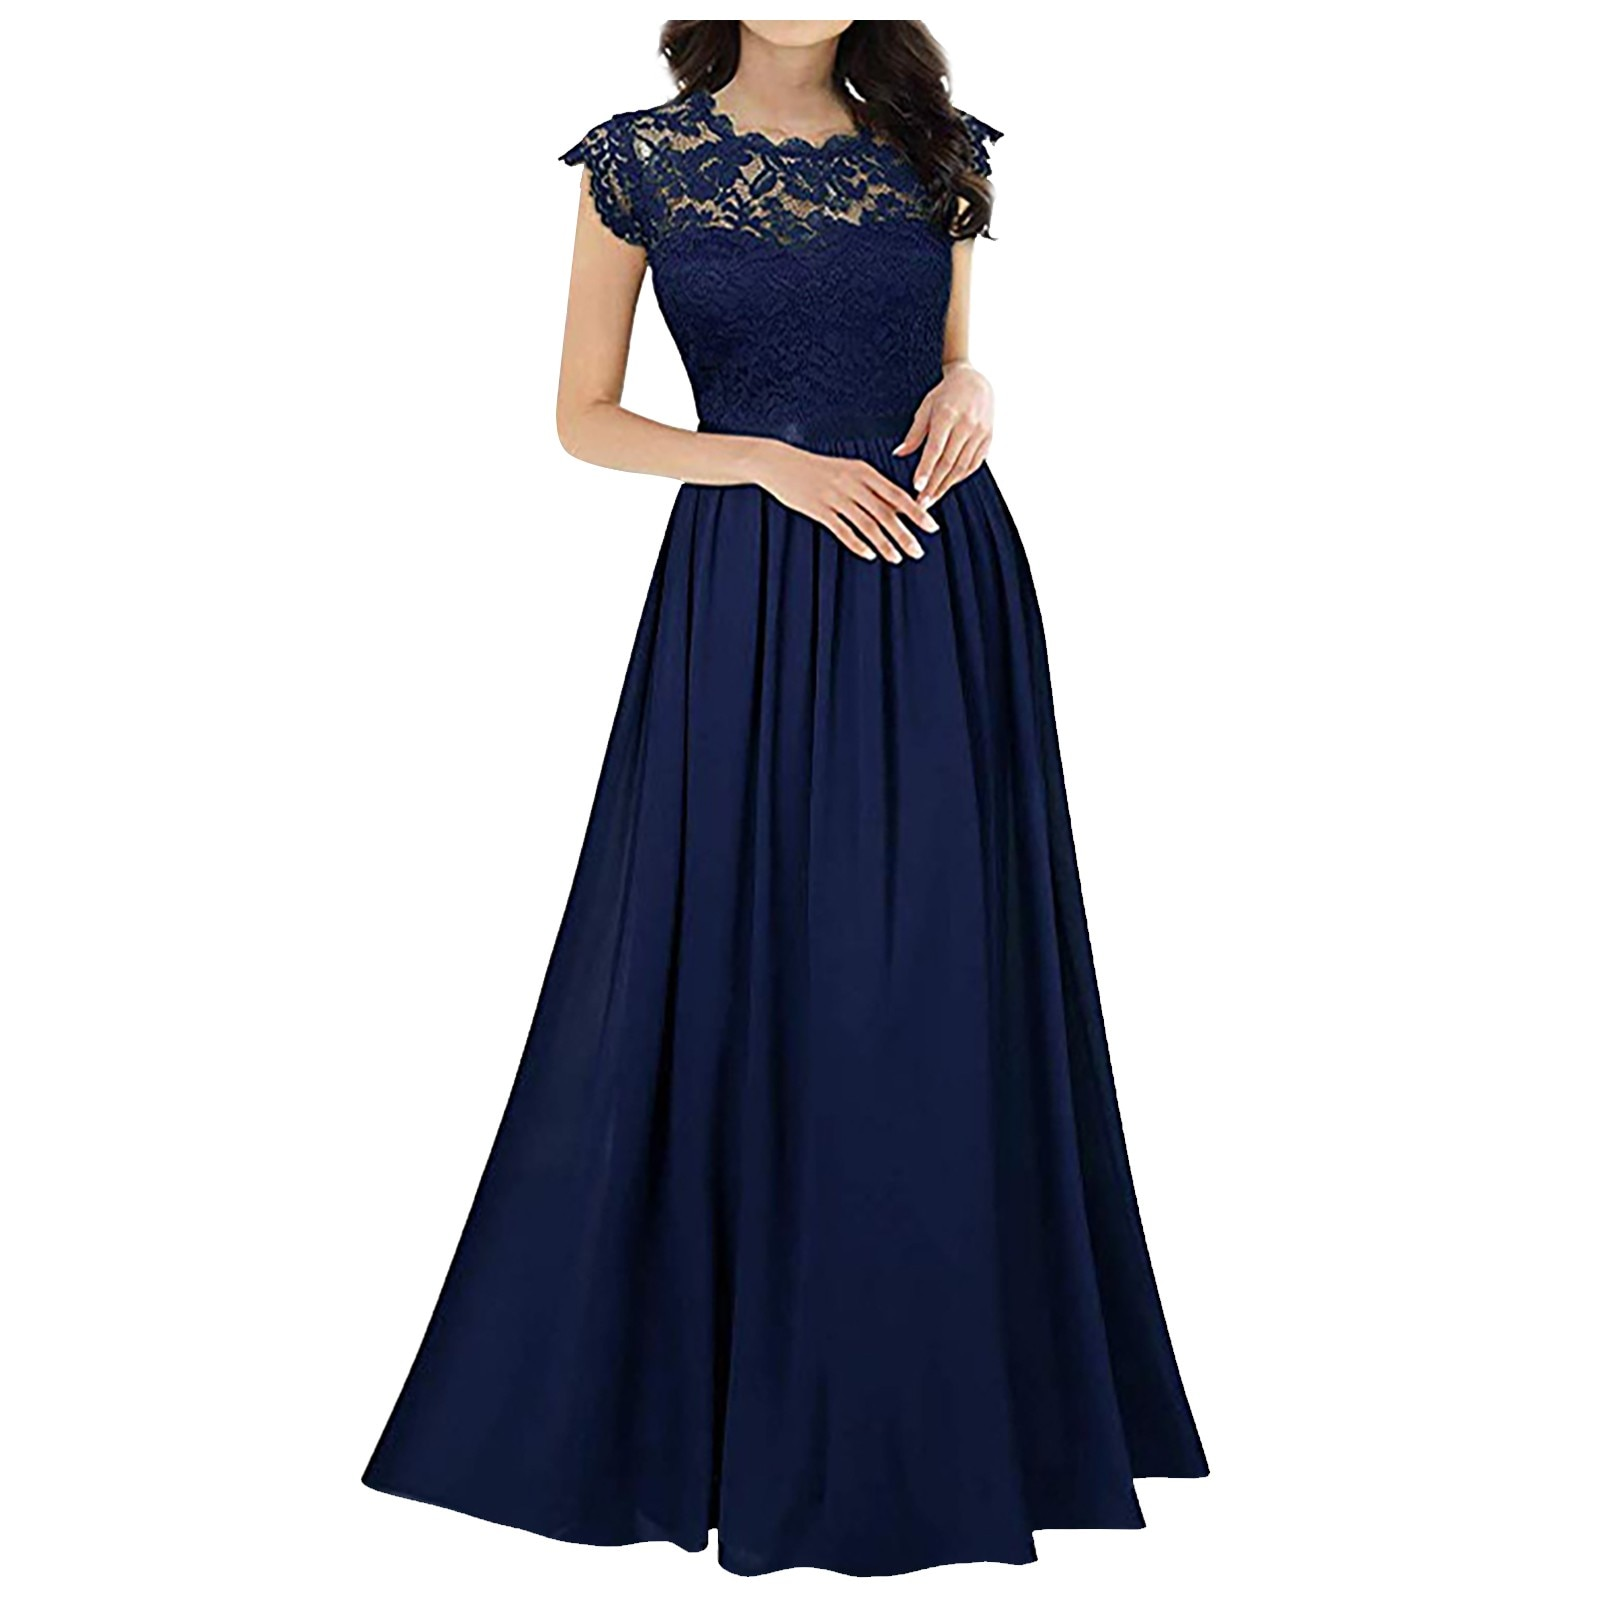 Chiffon Dress Lace Stitching Dress Bridesmaids Elegant Solid Color Dress Evening Gowns Woman Dress �